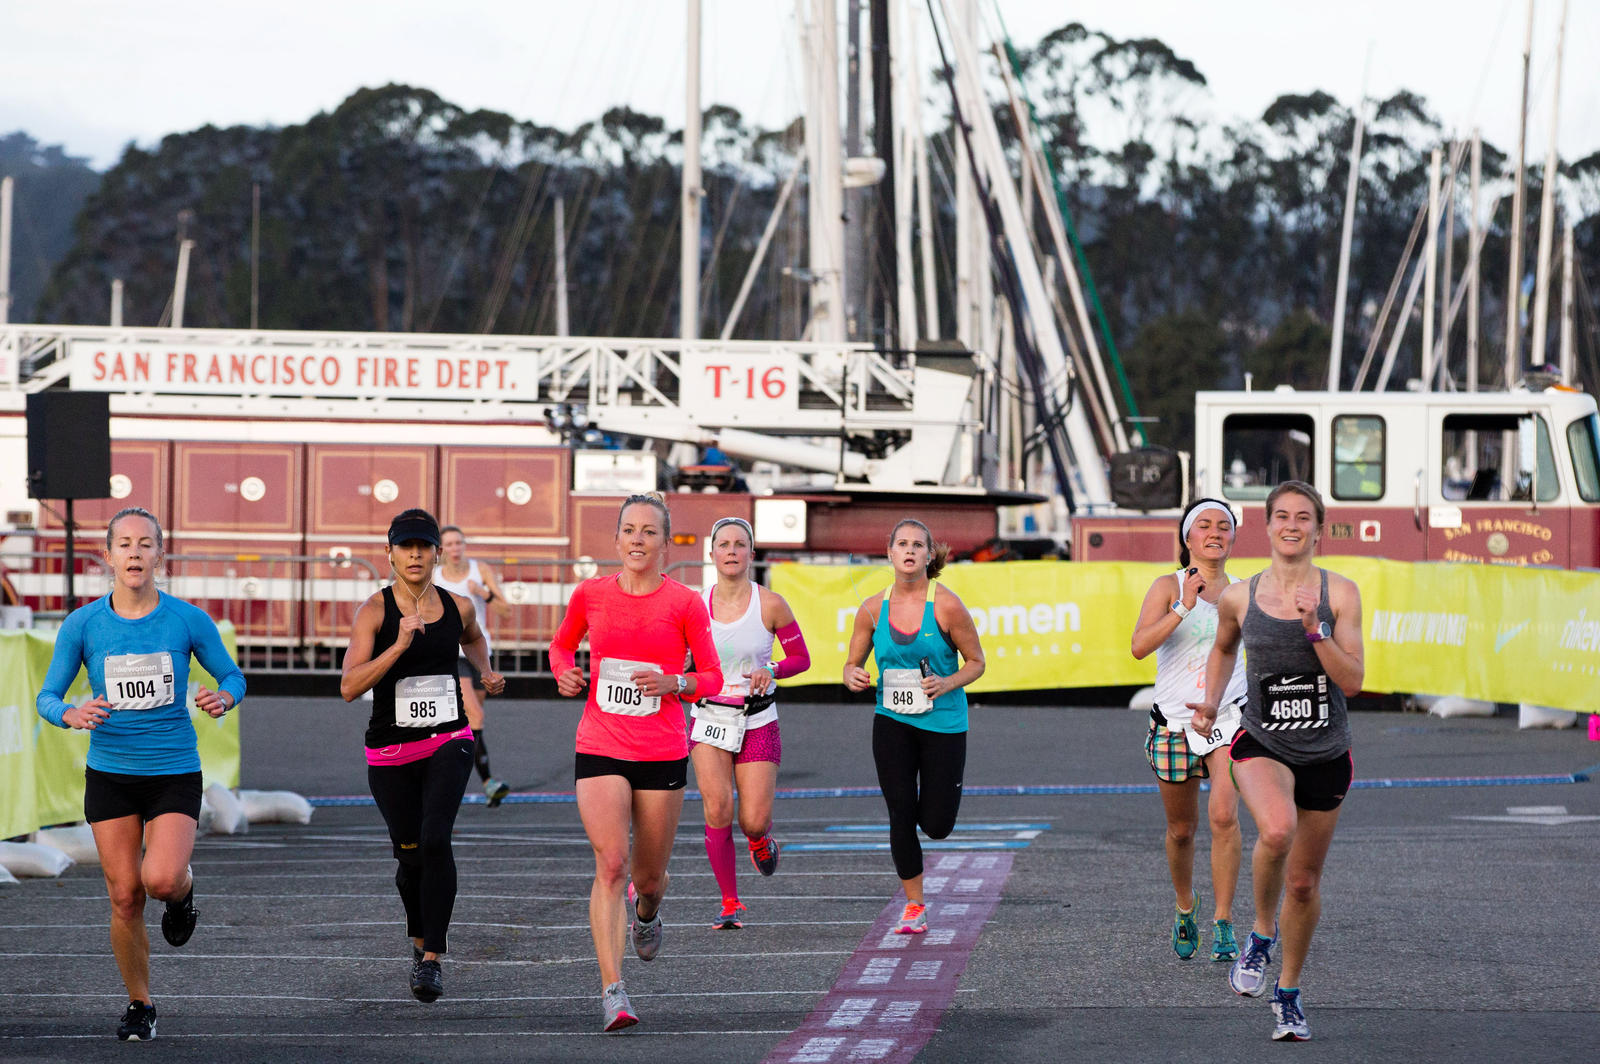 Sf Finish Fire%20 Truck%20and%20 Runners